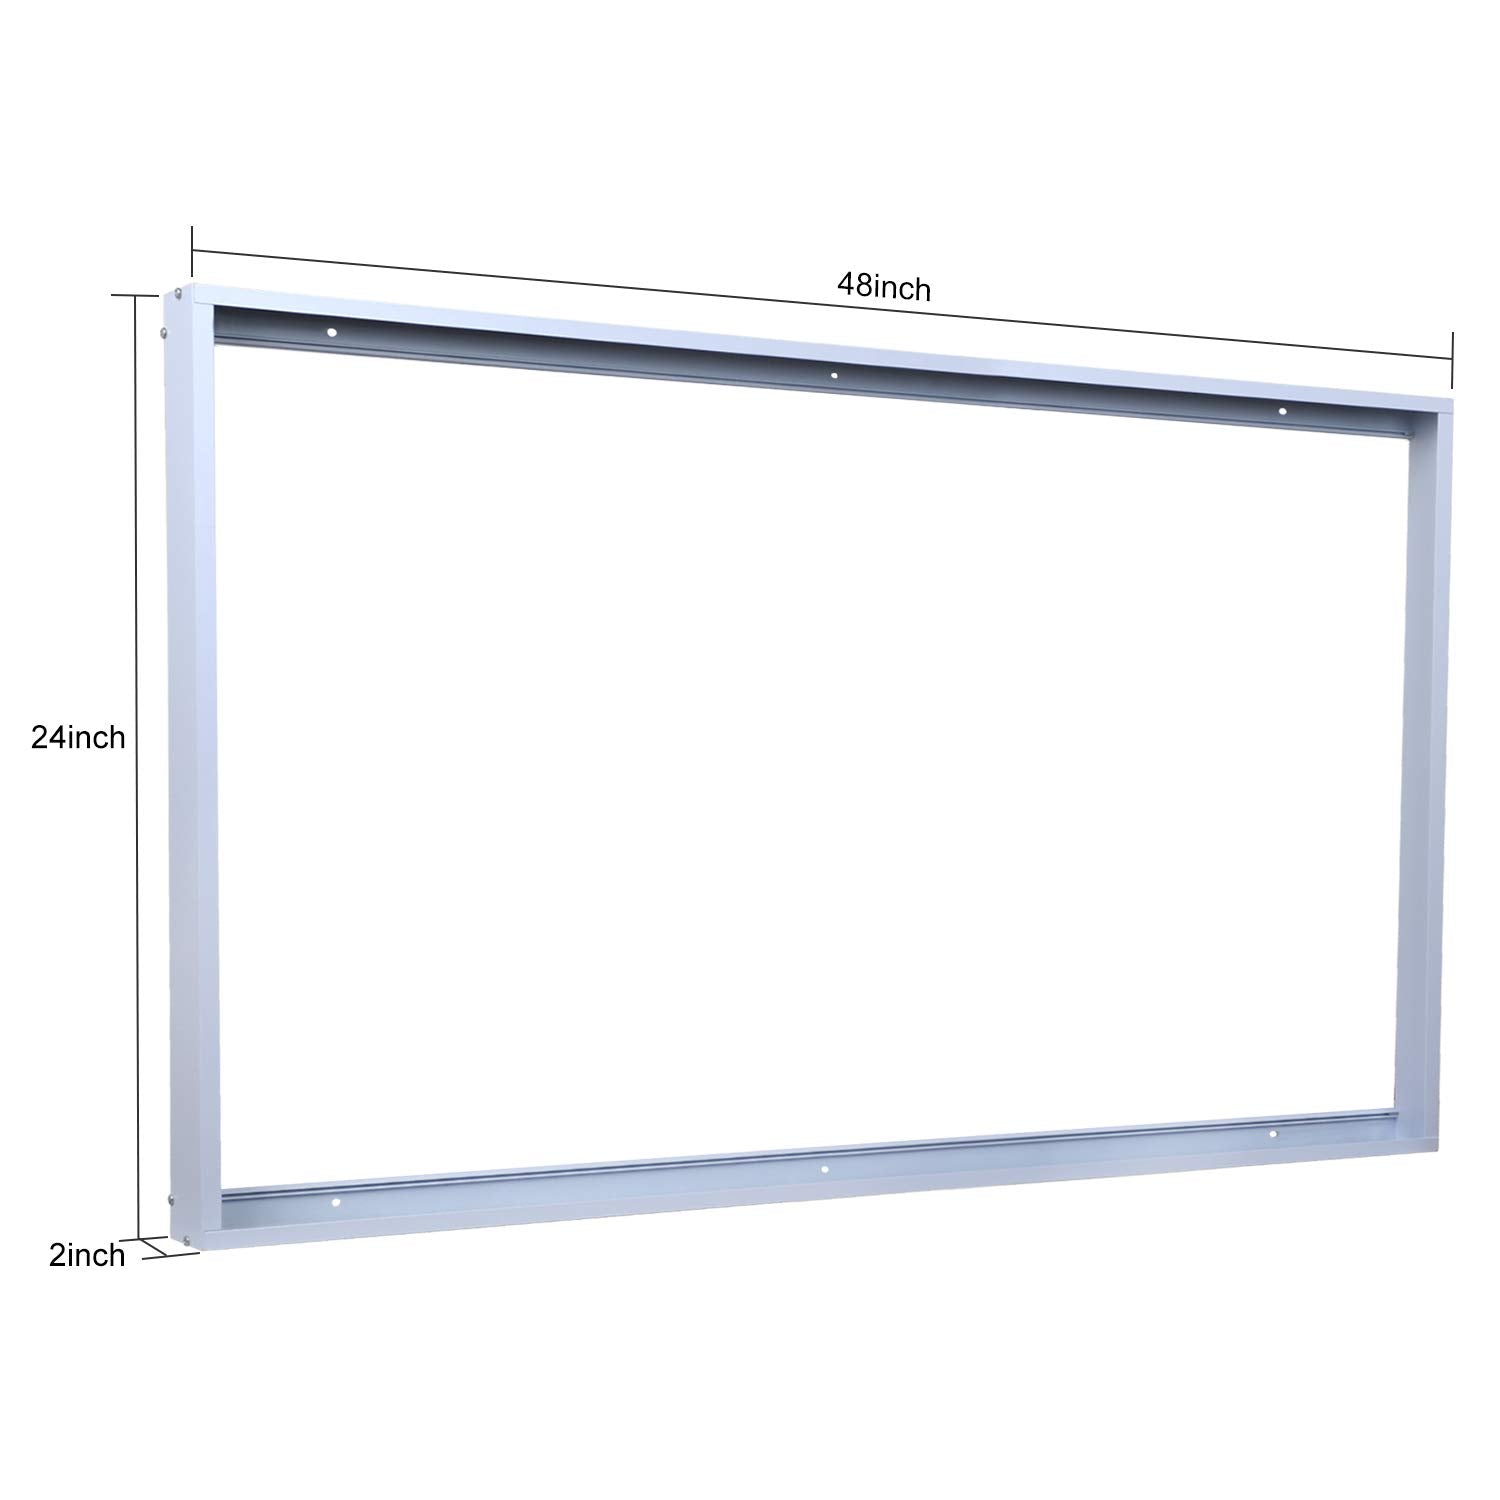 1-Pack 2x4FT Surface Mount Kit, Dawnray Ceiling Frame Kit for 2x4FT LED Panel Light/Drop Ceiling Light Aluminum - Consavvy